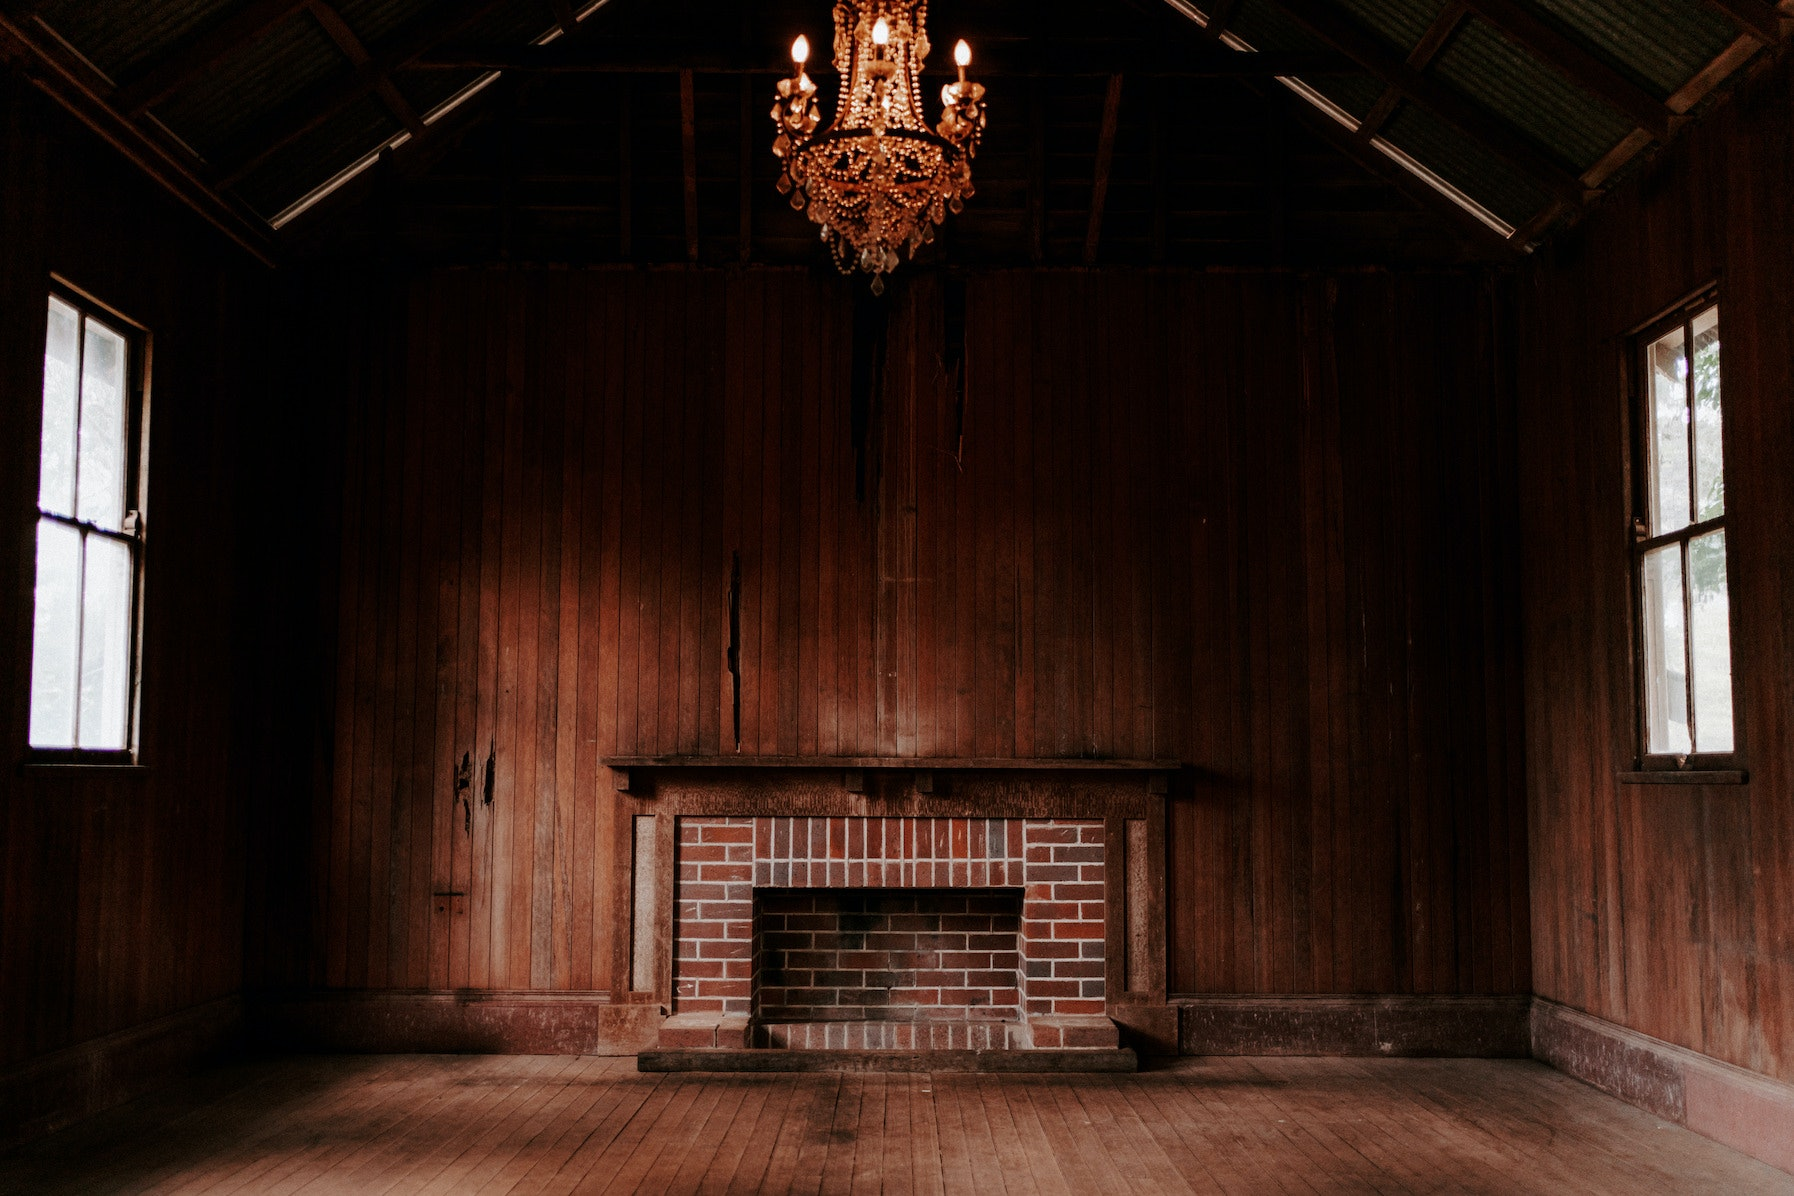 Old brick fireplace with chandelier hanging above